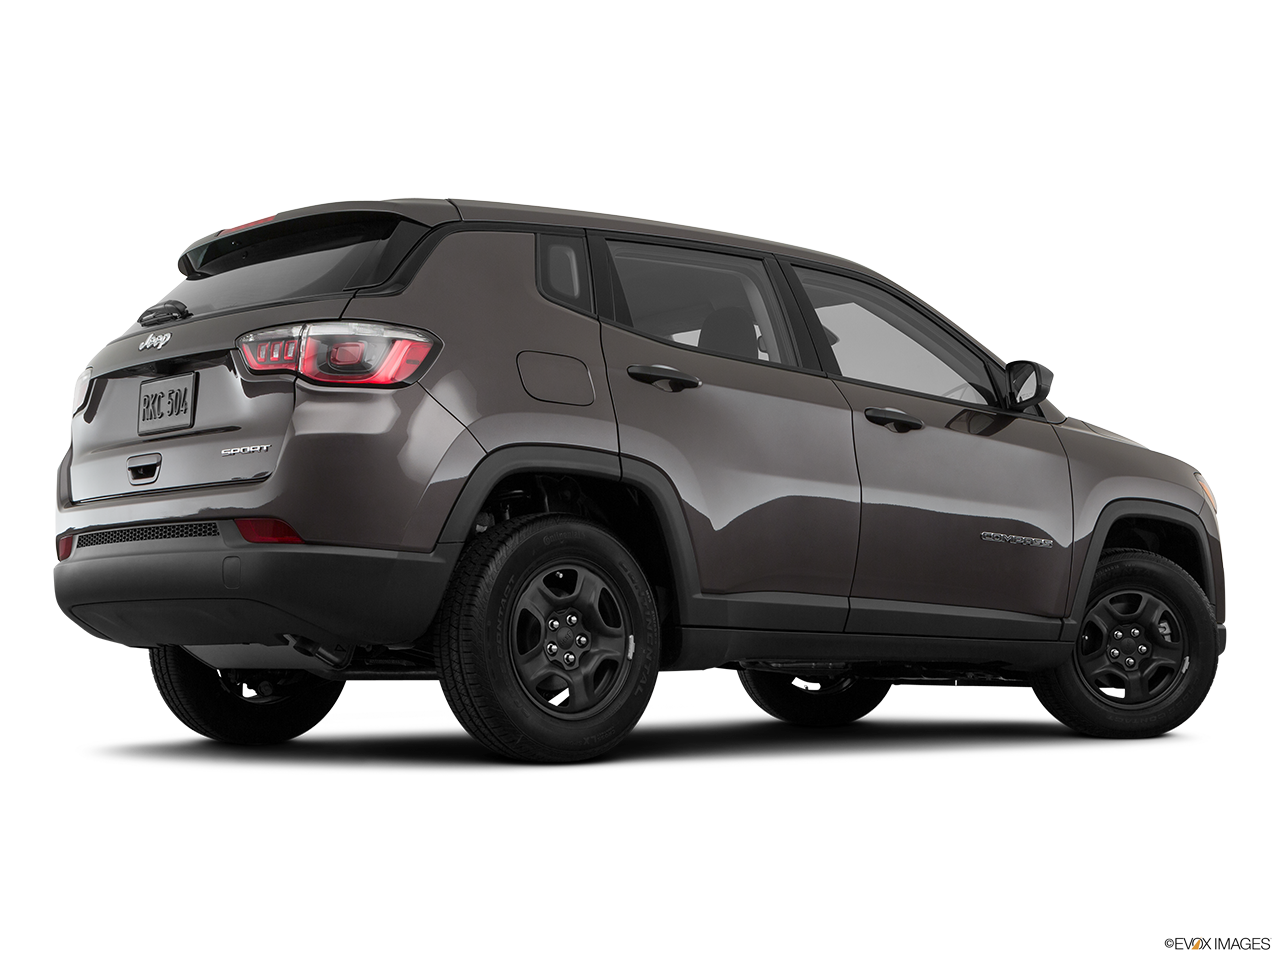 2020 Jeep Compass photo